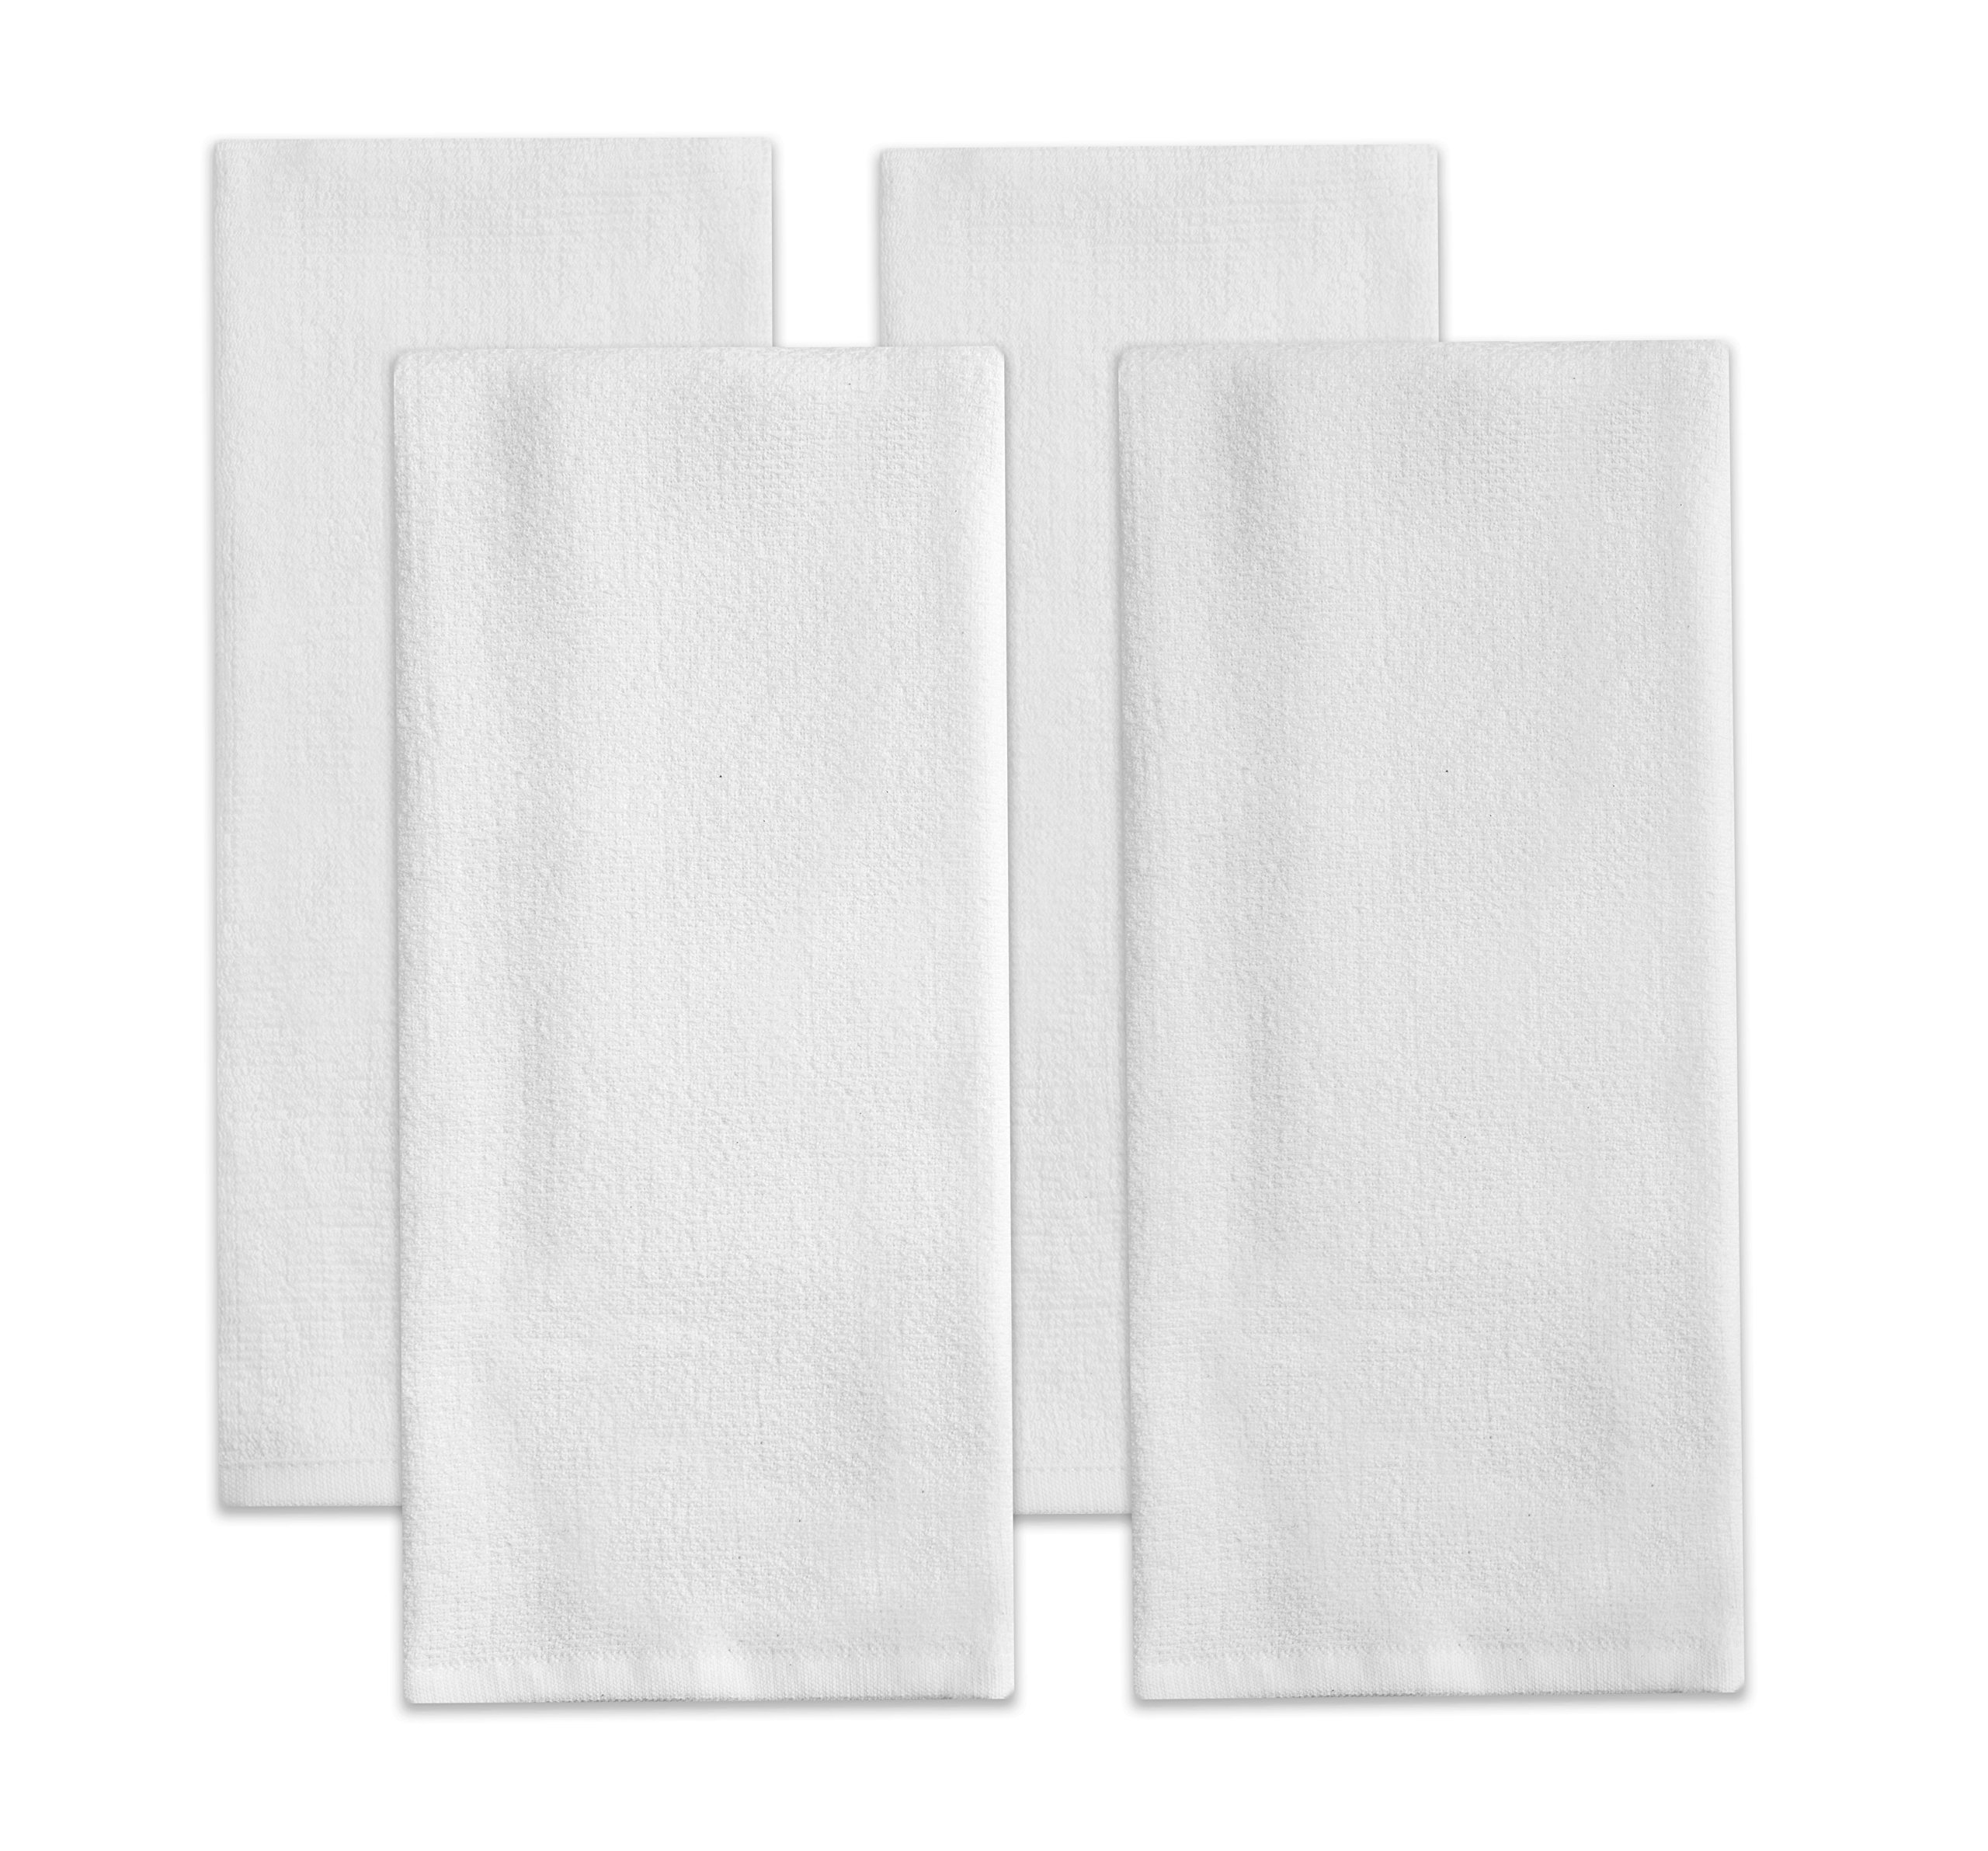 Sticky Toffee Cotton Terry Kitchen Dish Towel, 4 Pack, White, 28 in x 14 in by Sticky Toffee (Image #1)